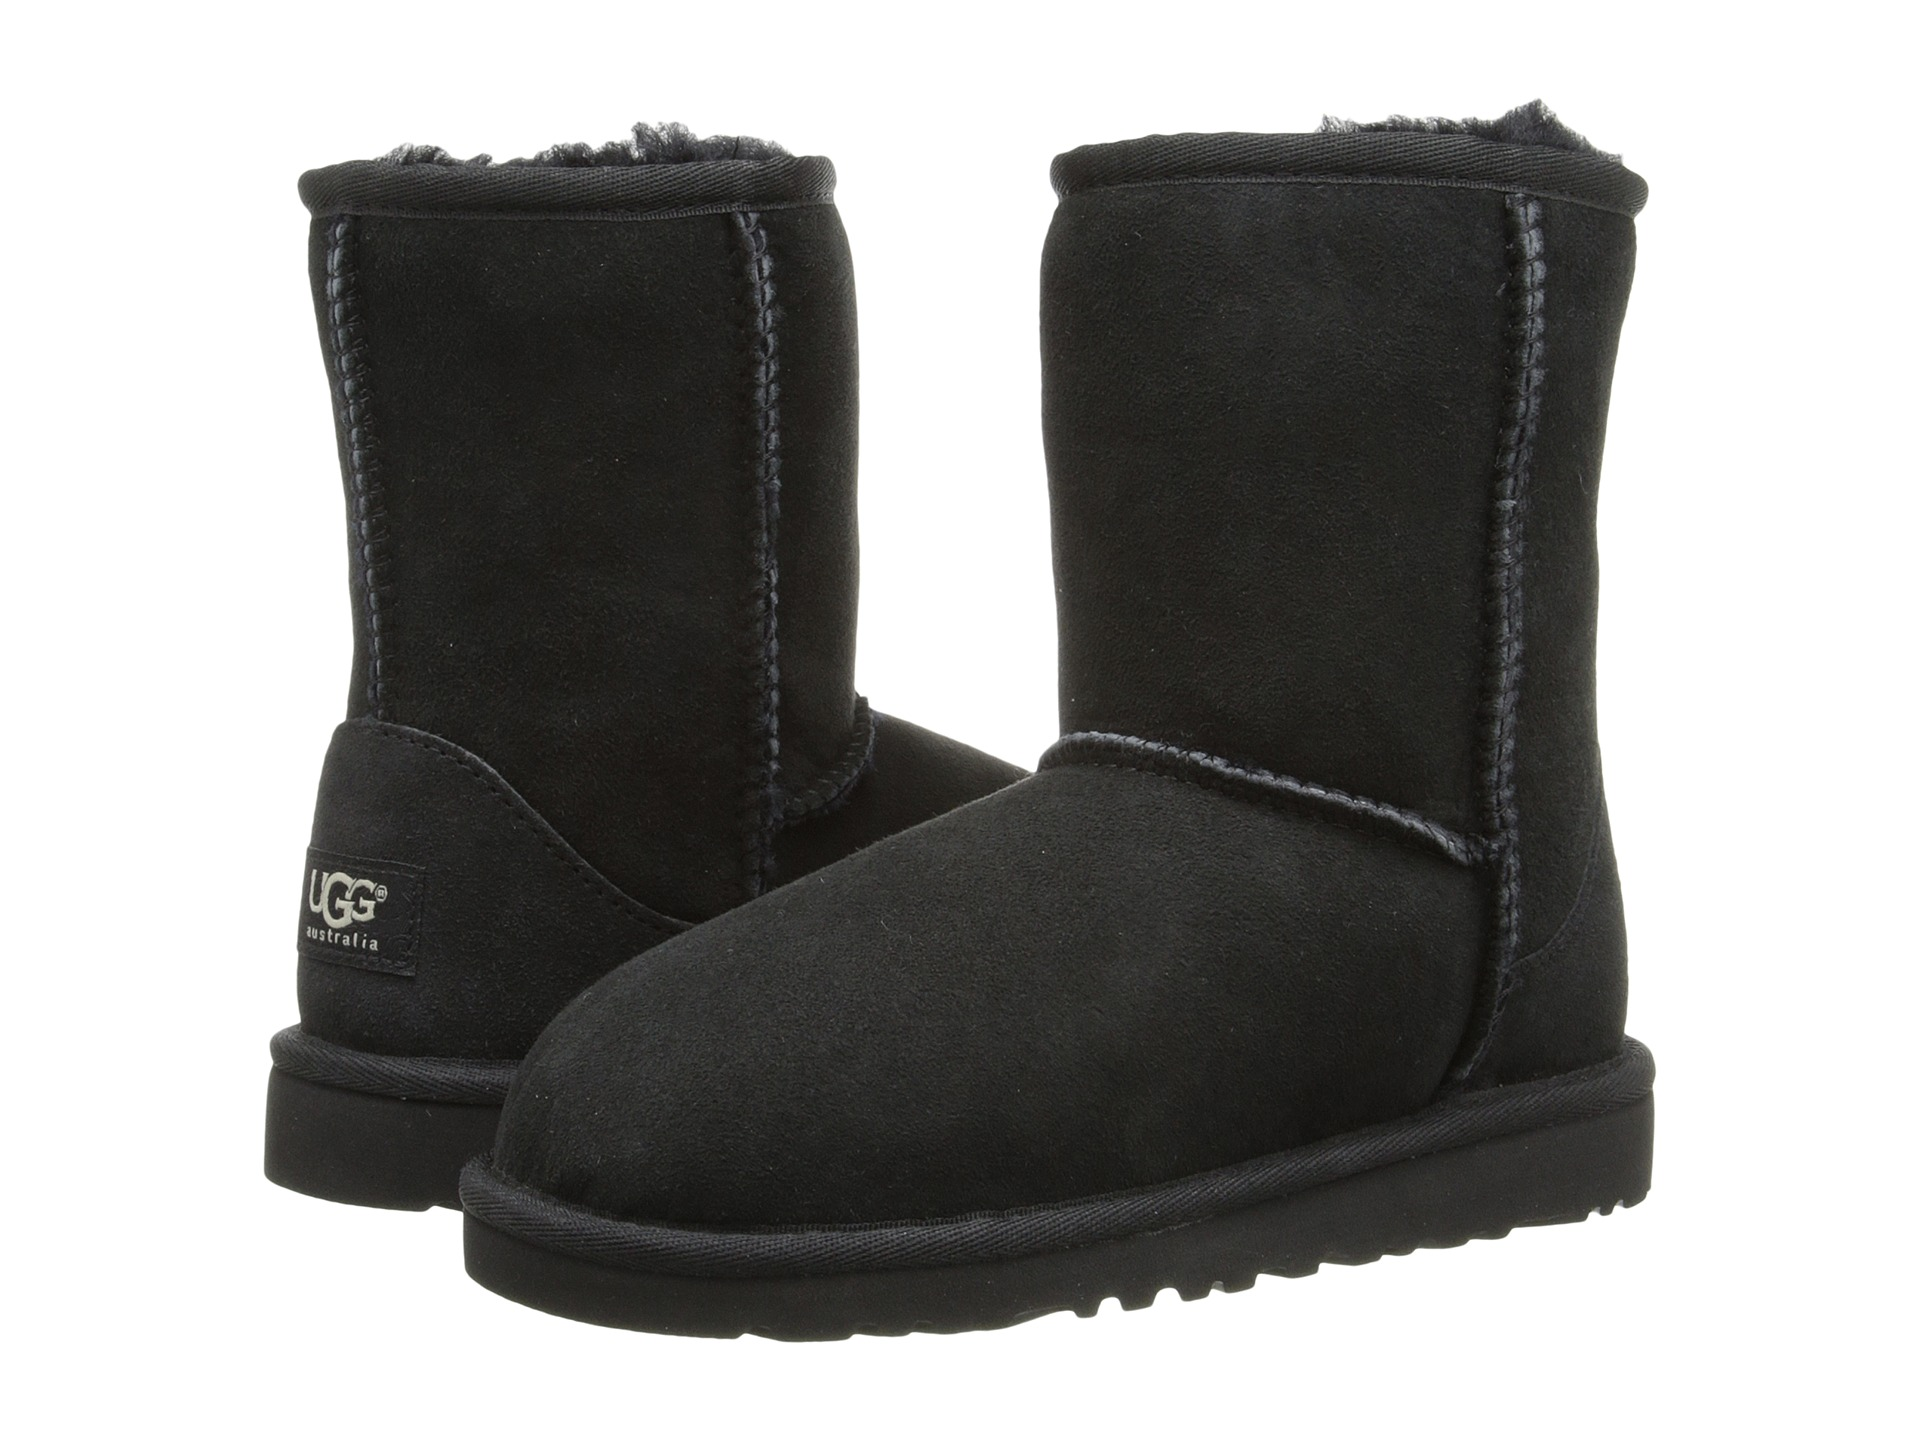 ugg boots youth size 4